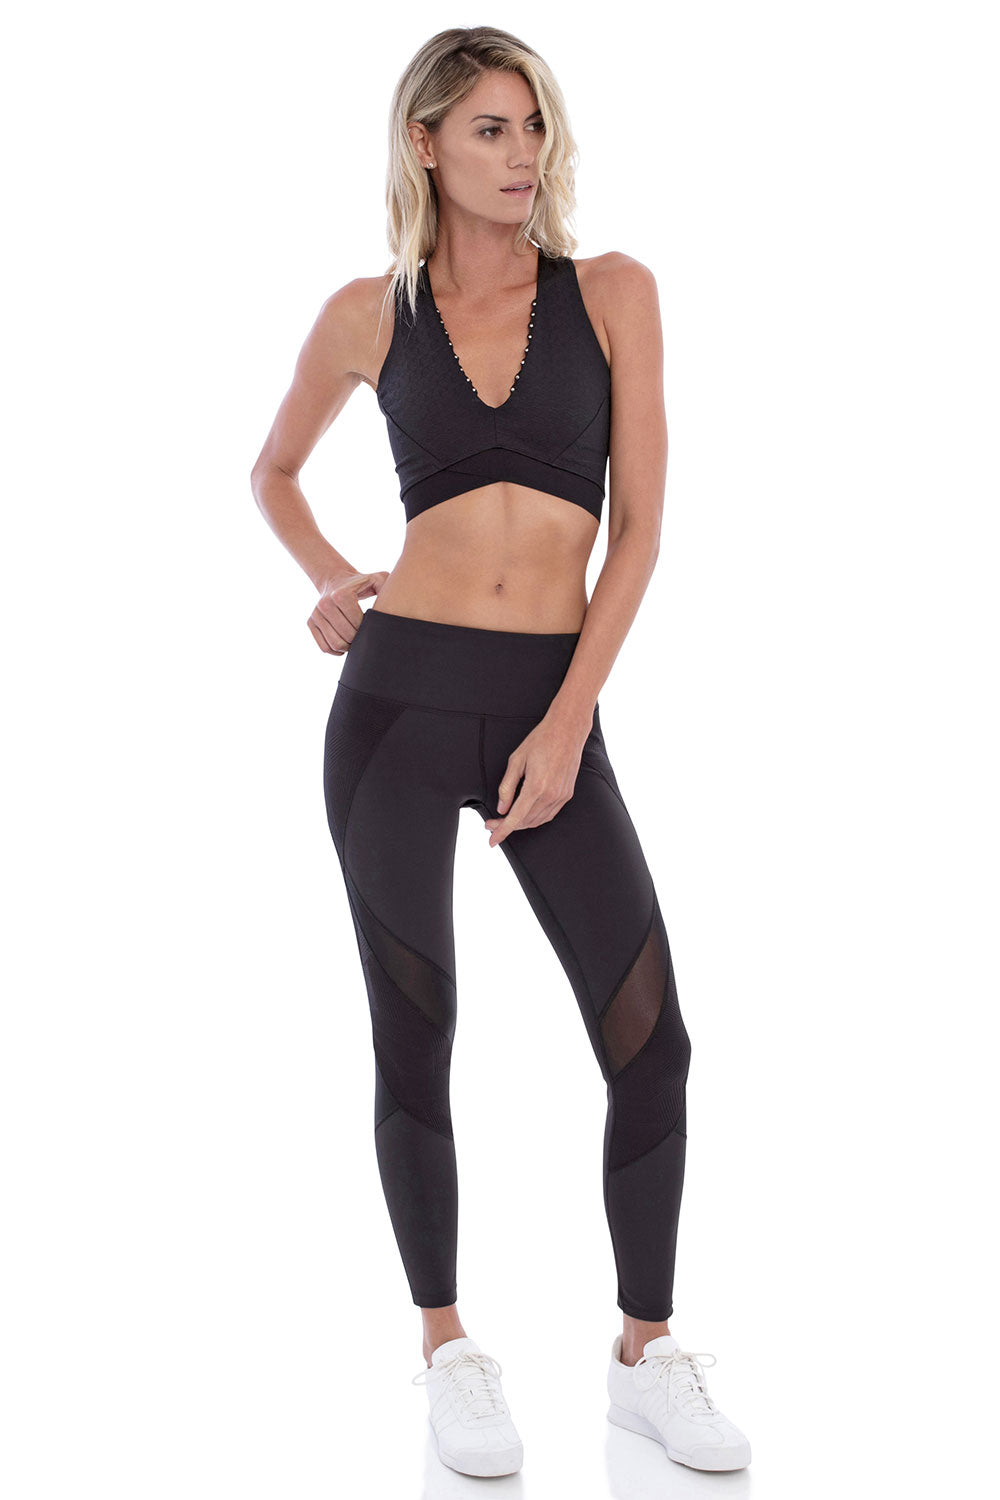 Track & Bliss Medley 7/8 Legging - Sculptique